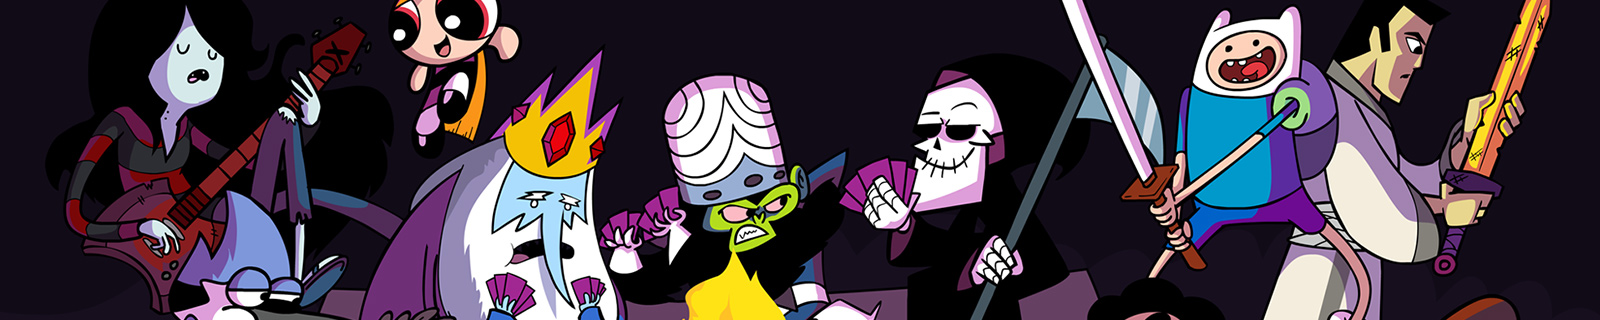 Cartoon Network  Banner Image